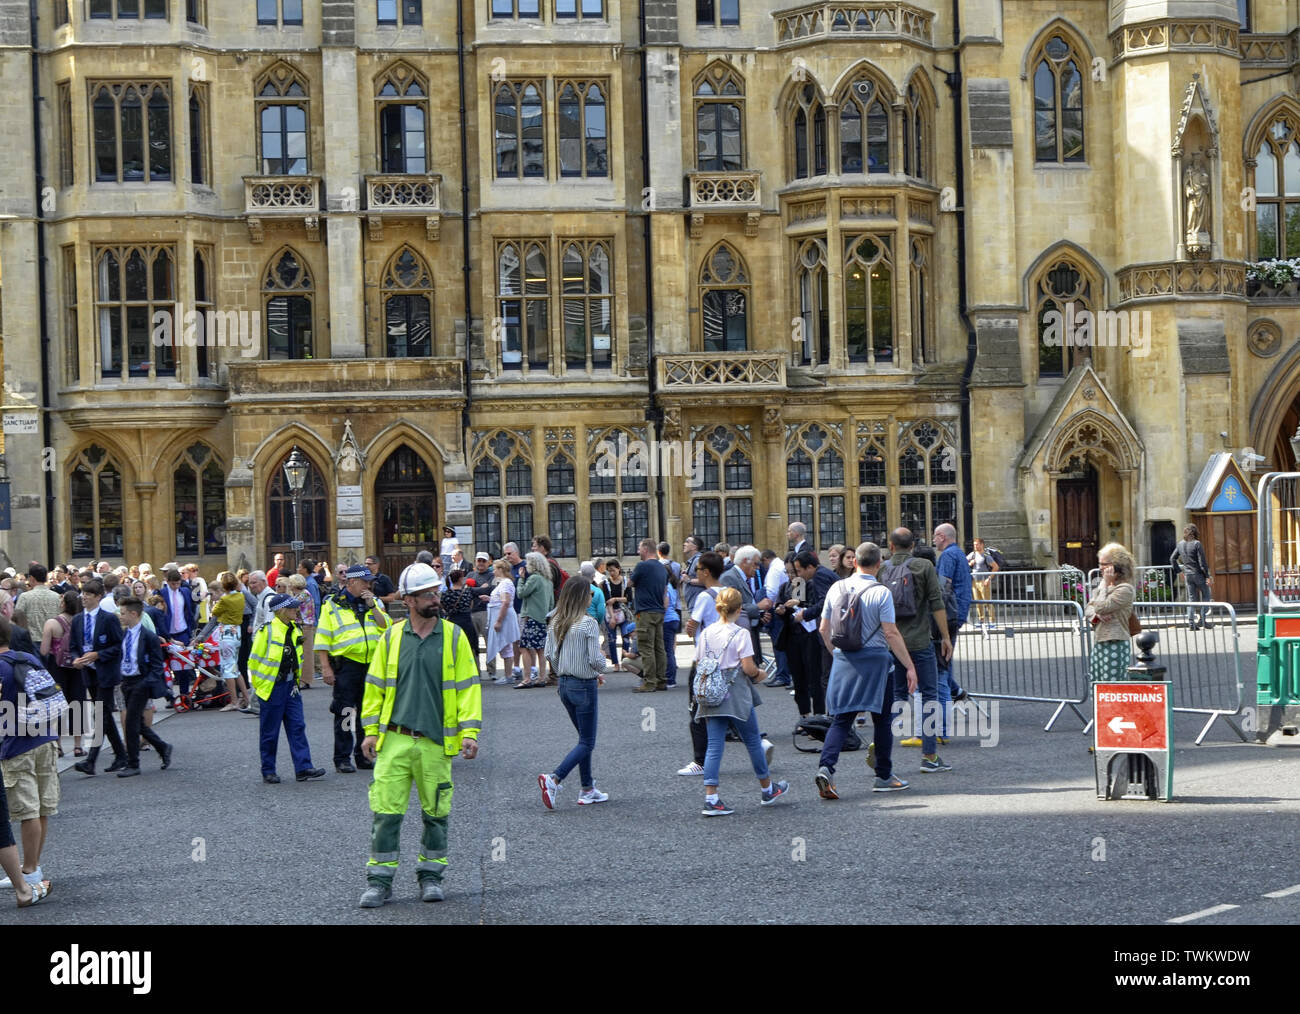 London, United Kingdom, June 2018. The entrance to the Abbey of Westminster Abbey on the occasion of a mundane event. A large crowd of people has posi - Stock Image